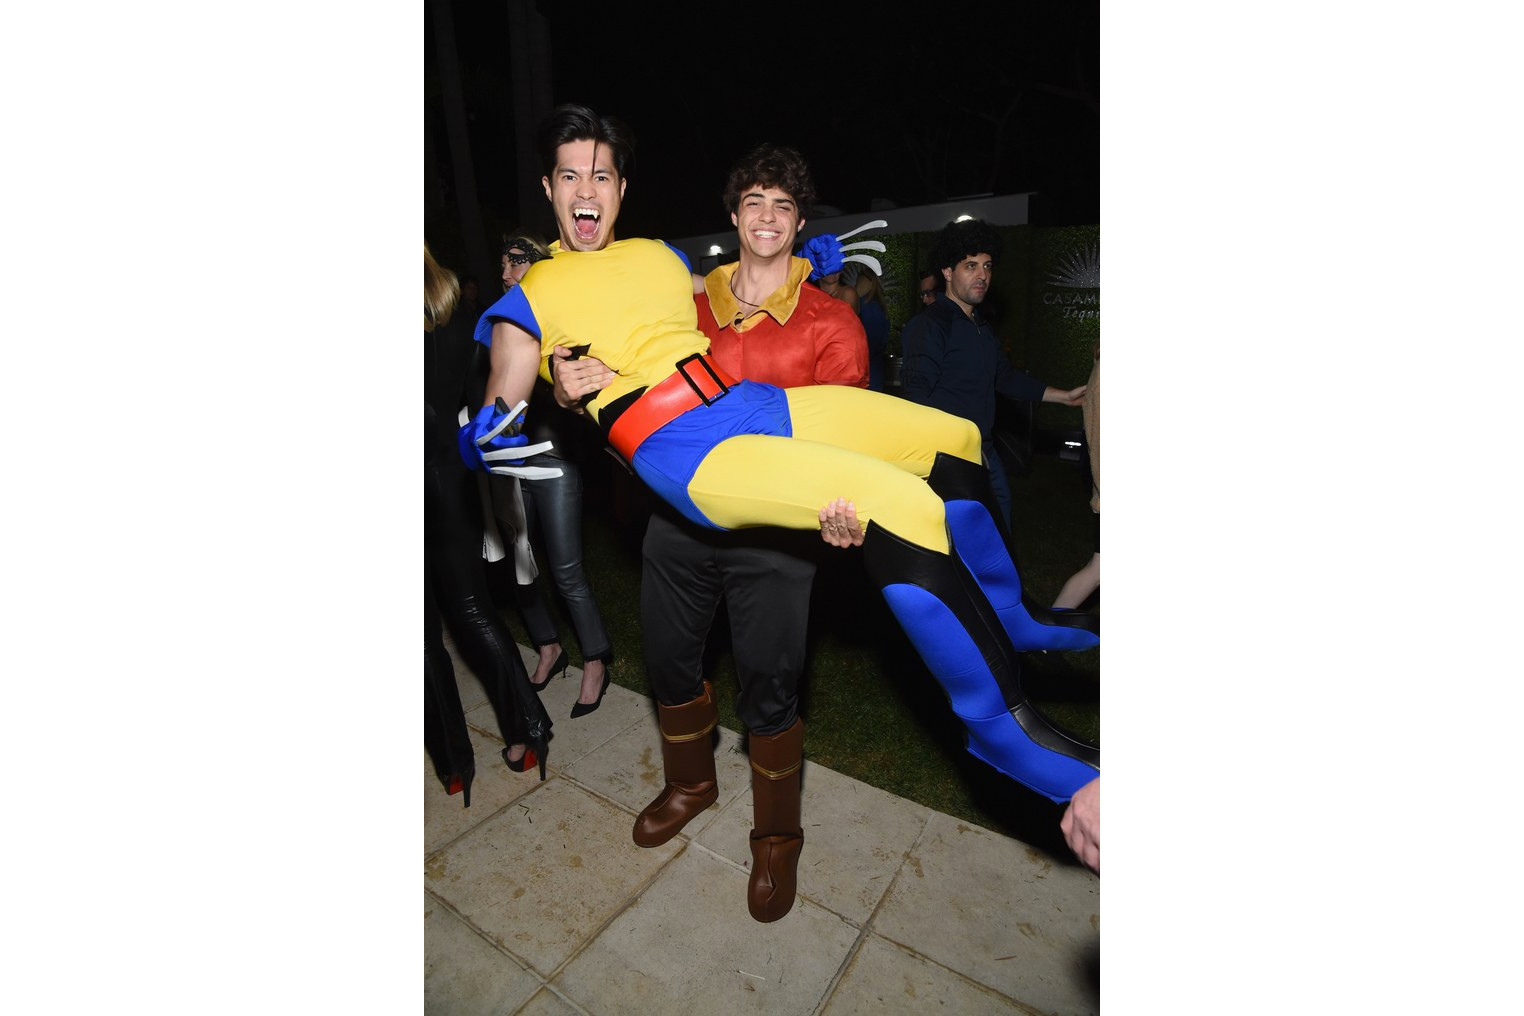 Celebrity Halloween Costumes Noah Centineo Kendall Jenner Kaia Gerber Zoe Kravitz Harry Styles Joe Jonas Halsey Ross Butler Nina Dobrev Gabrielle Union Party Hollywood